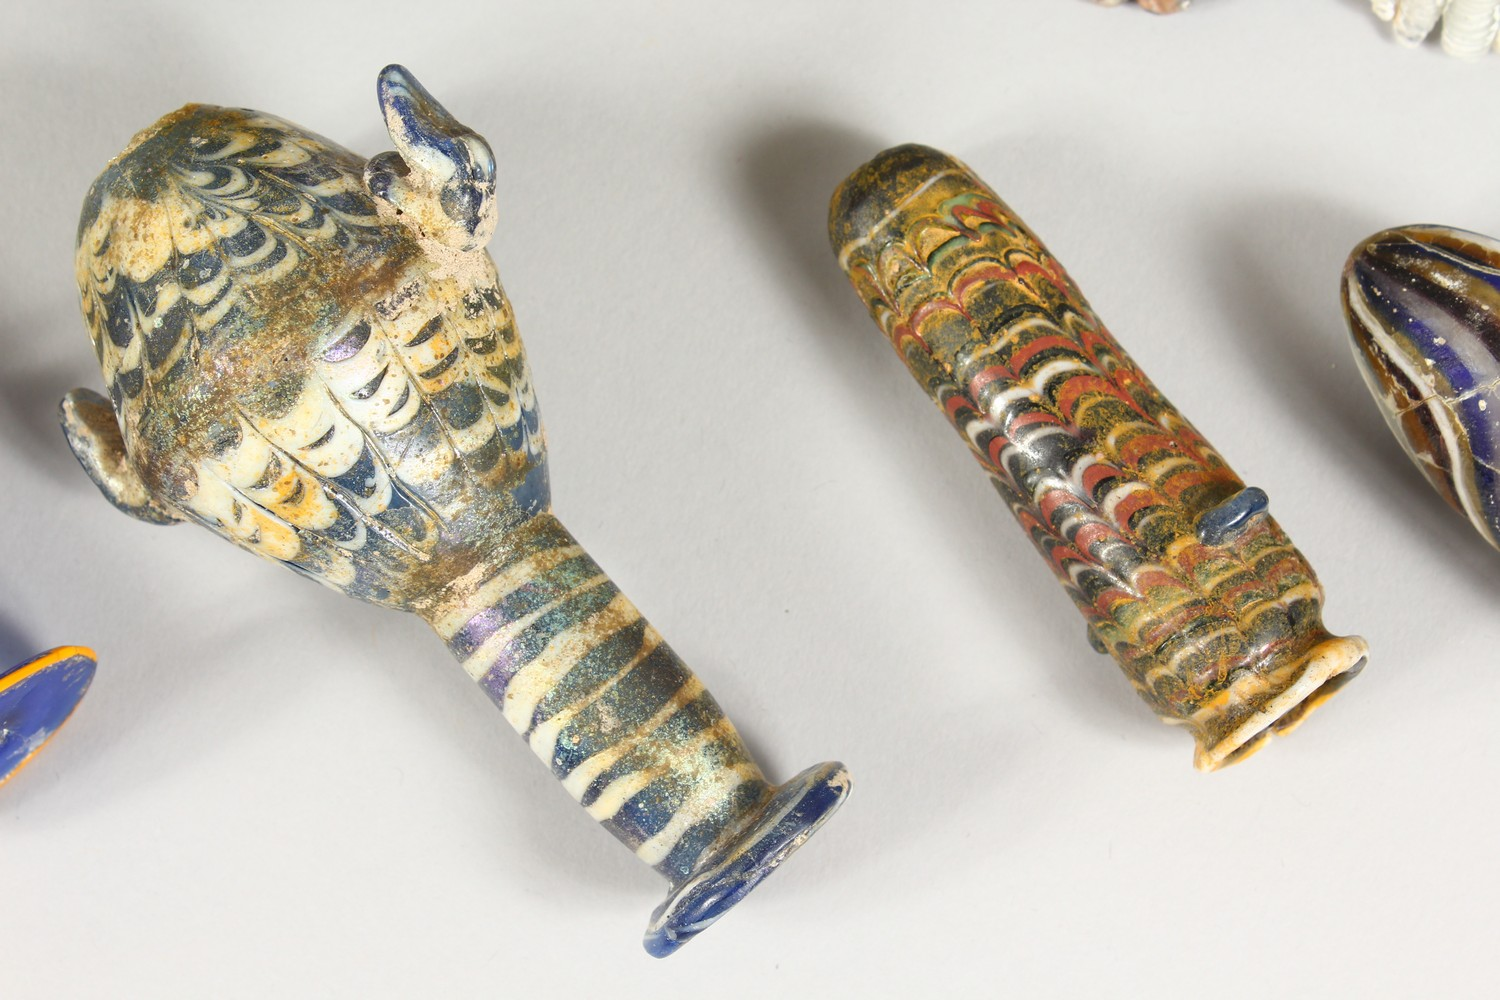 A GROUP OF THIRTEEN ROMAN GLASS BOTTLES AND JARS, including three tops in the form of heads (13). - Image 6 of 11